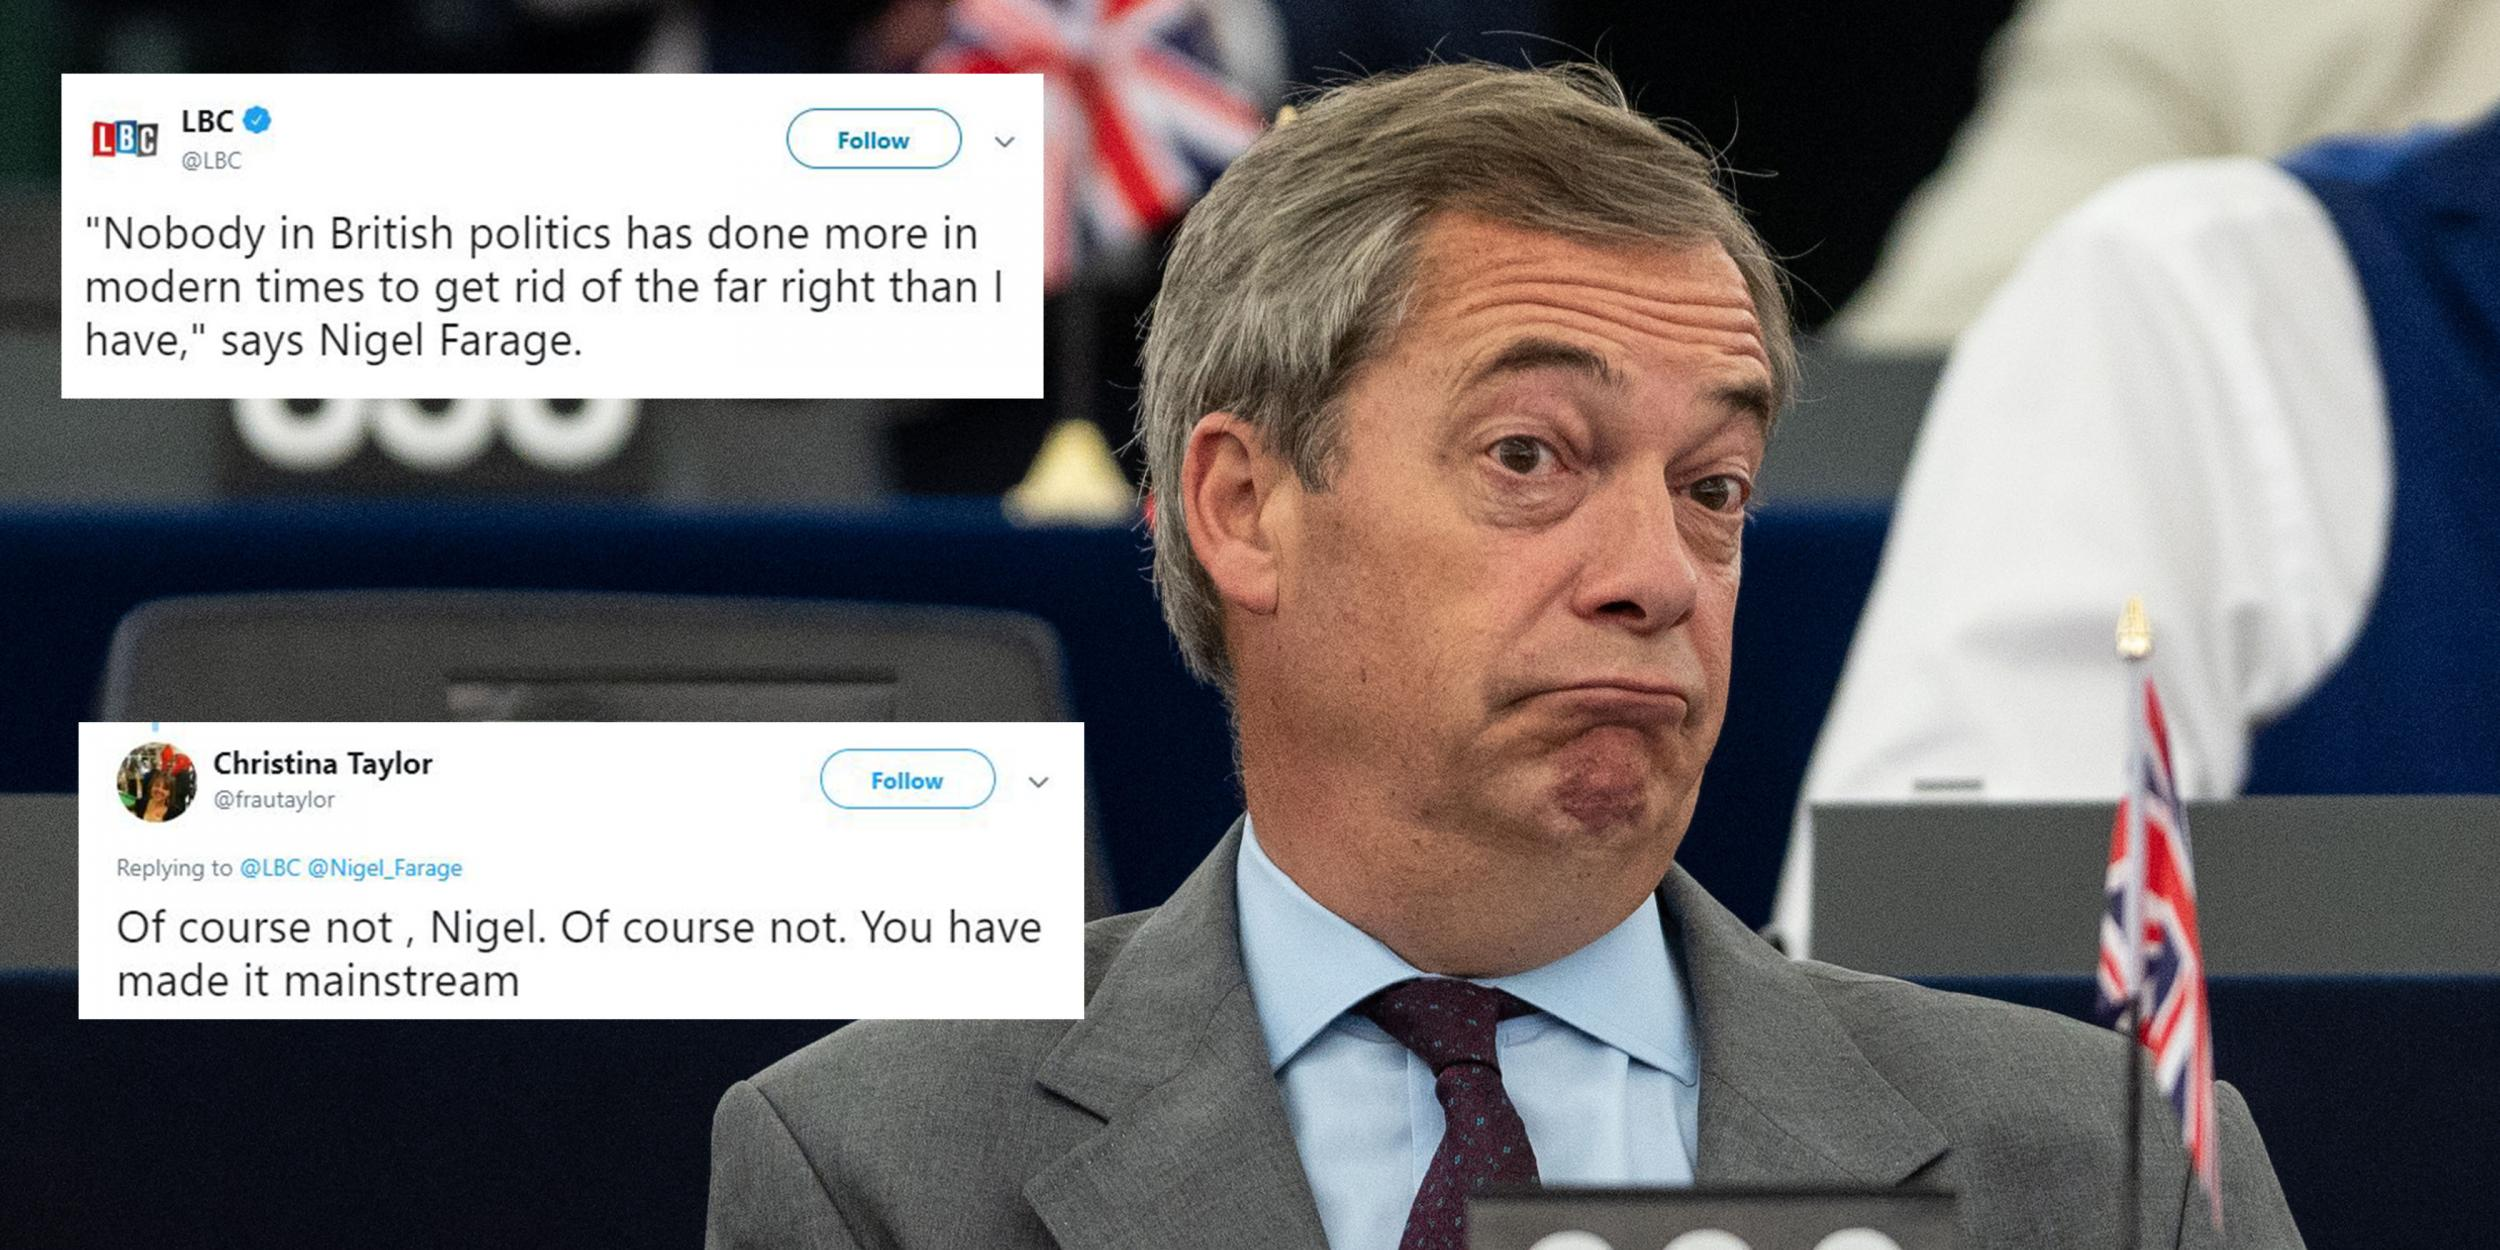 Nigel Farage said that he has 'done more than anyone get rid of the far-right' and everyone pointed out the irony